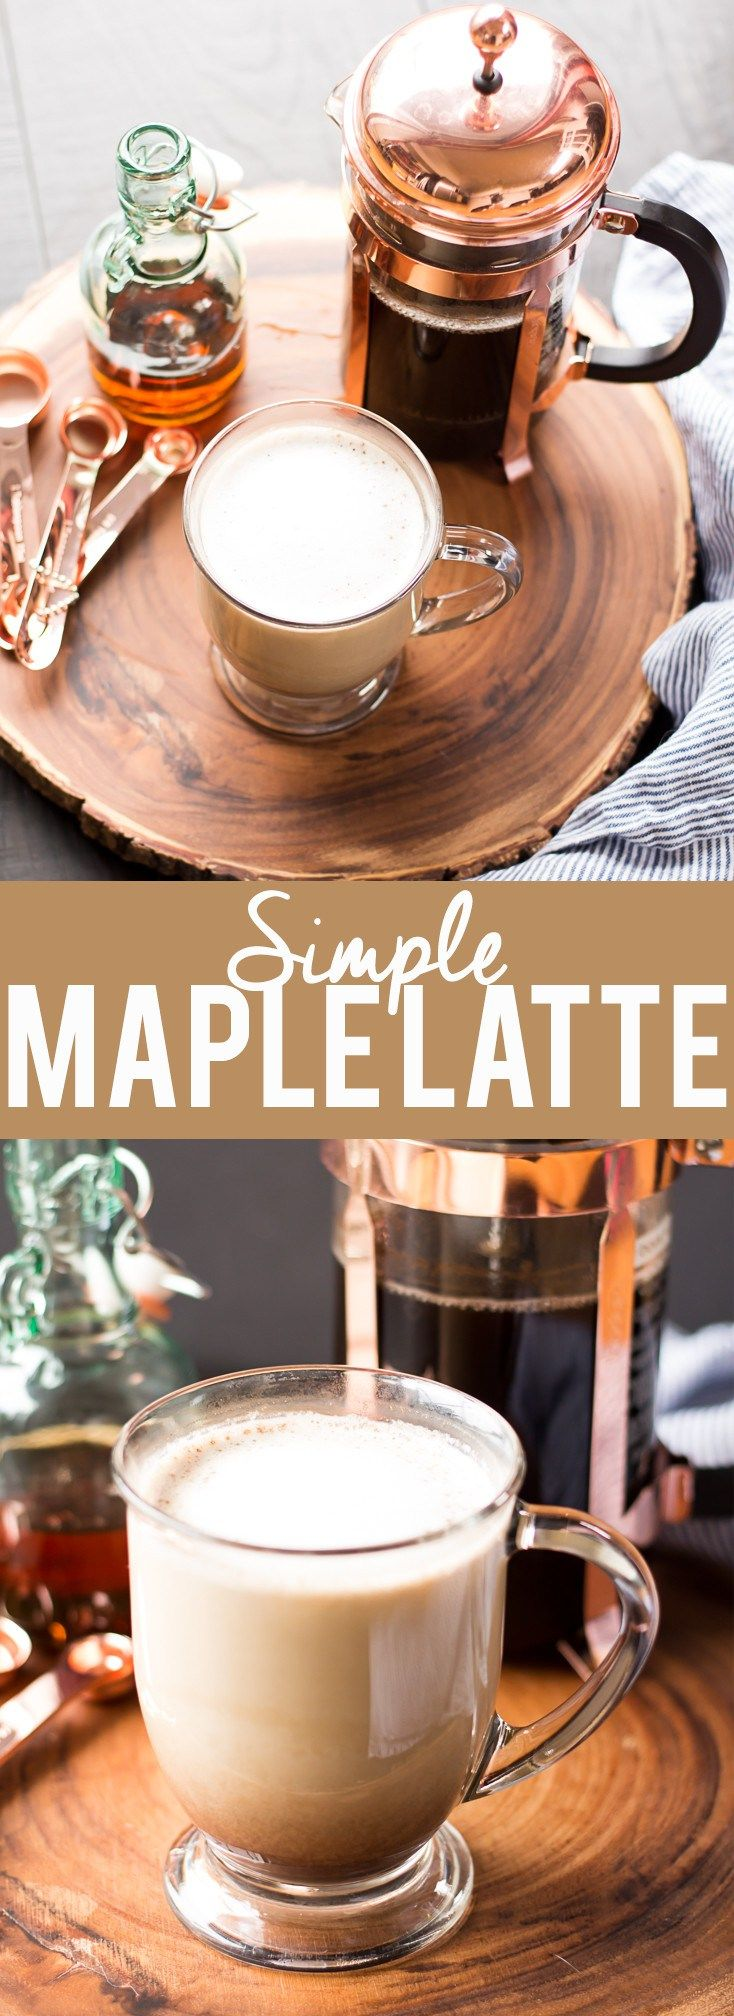 Simple Maple Latte Recipe Coffee recipes, Latte recipe